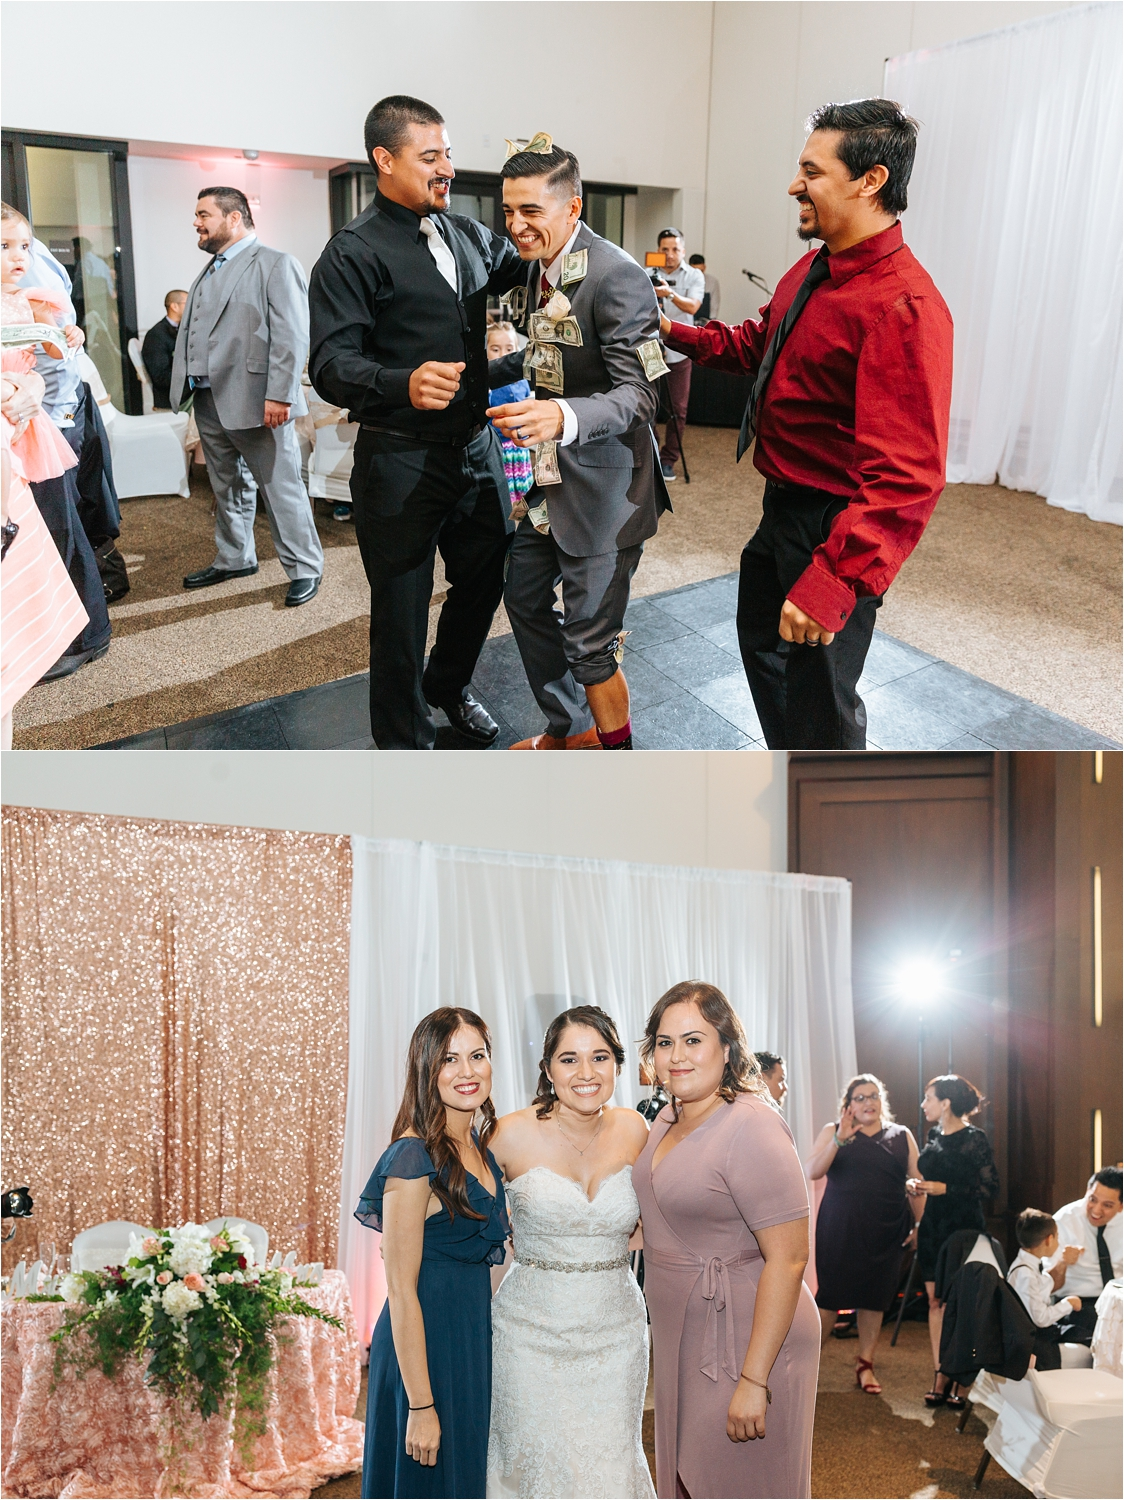 Dancing at the wedding reception - https://brittneyhannonphotography.com